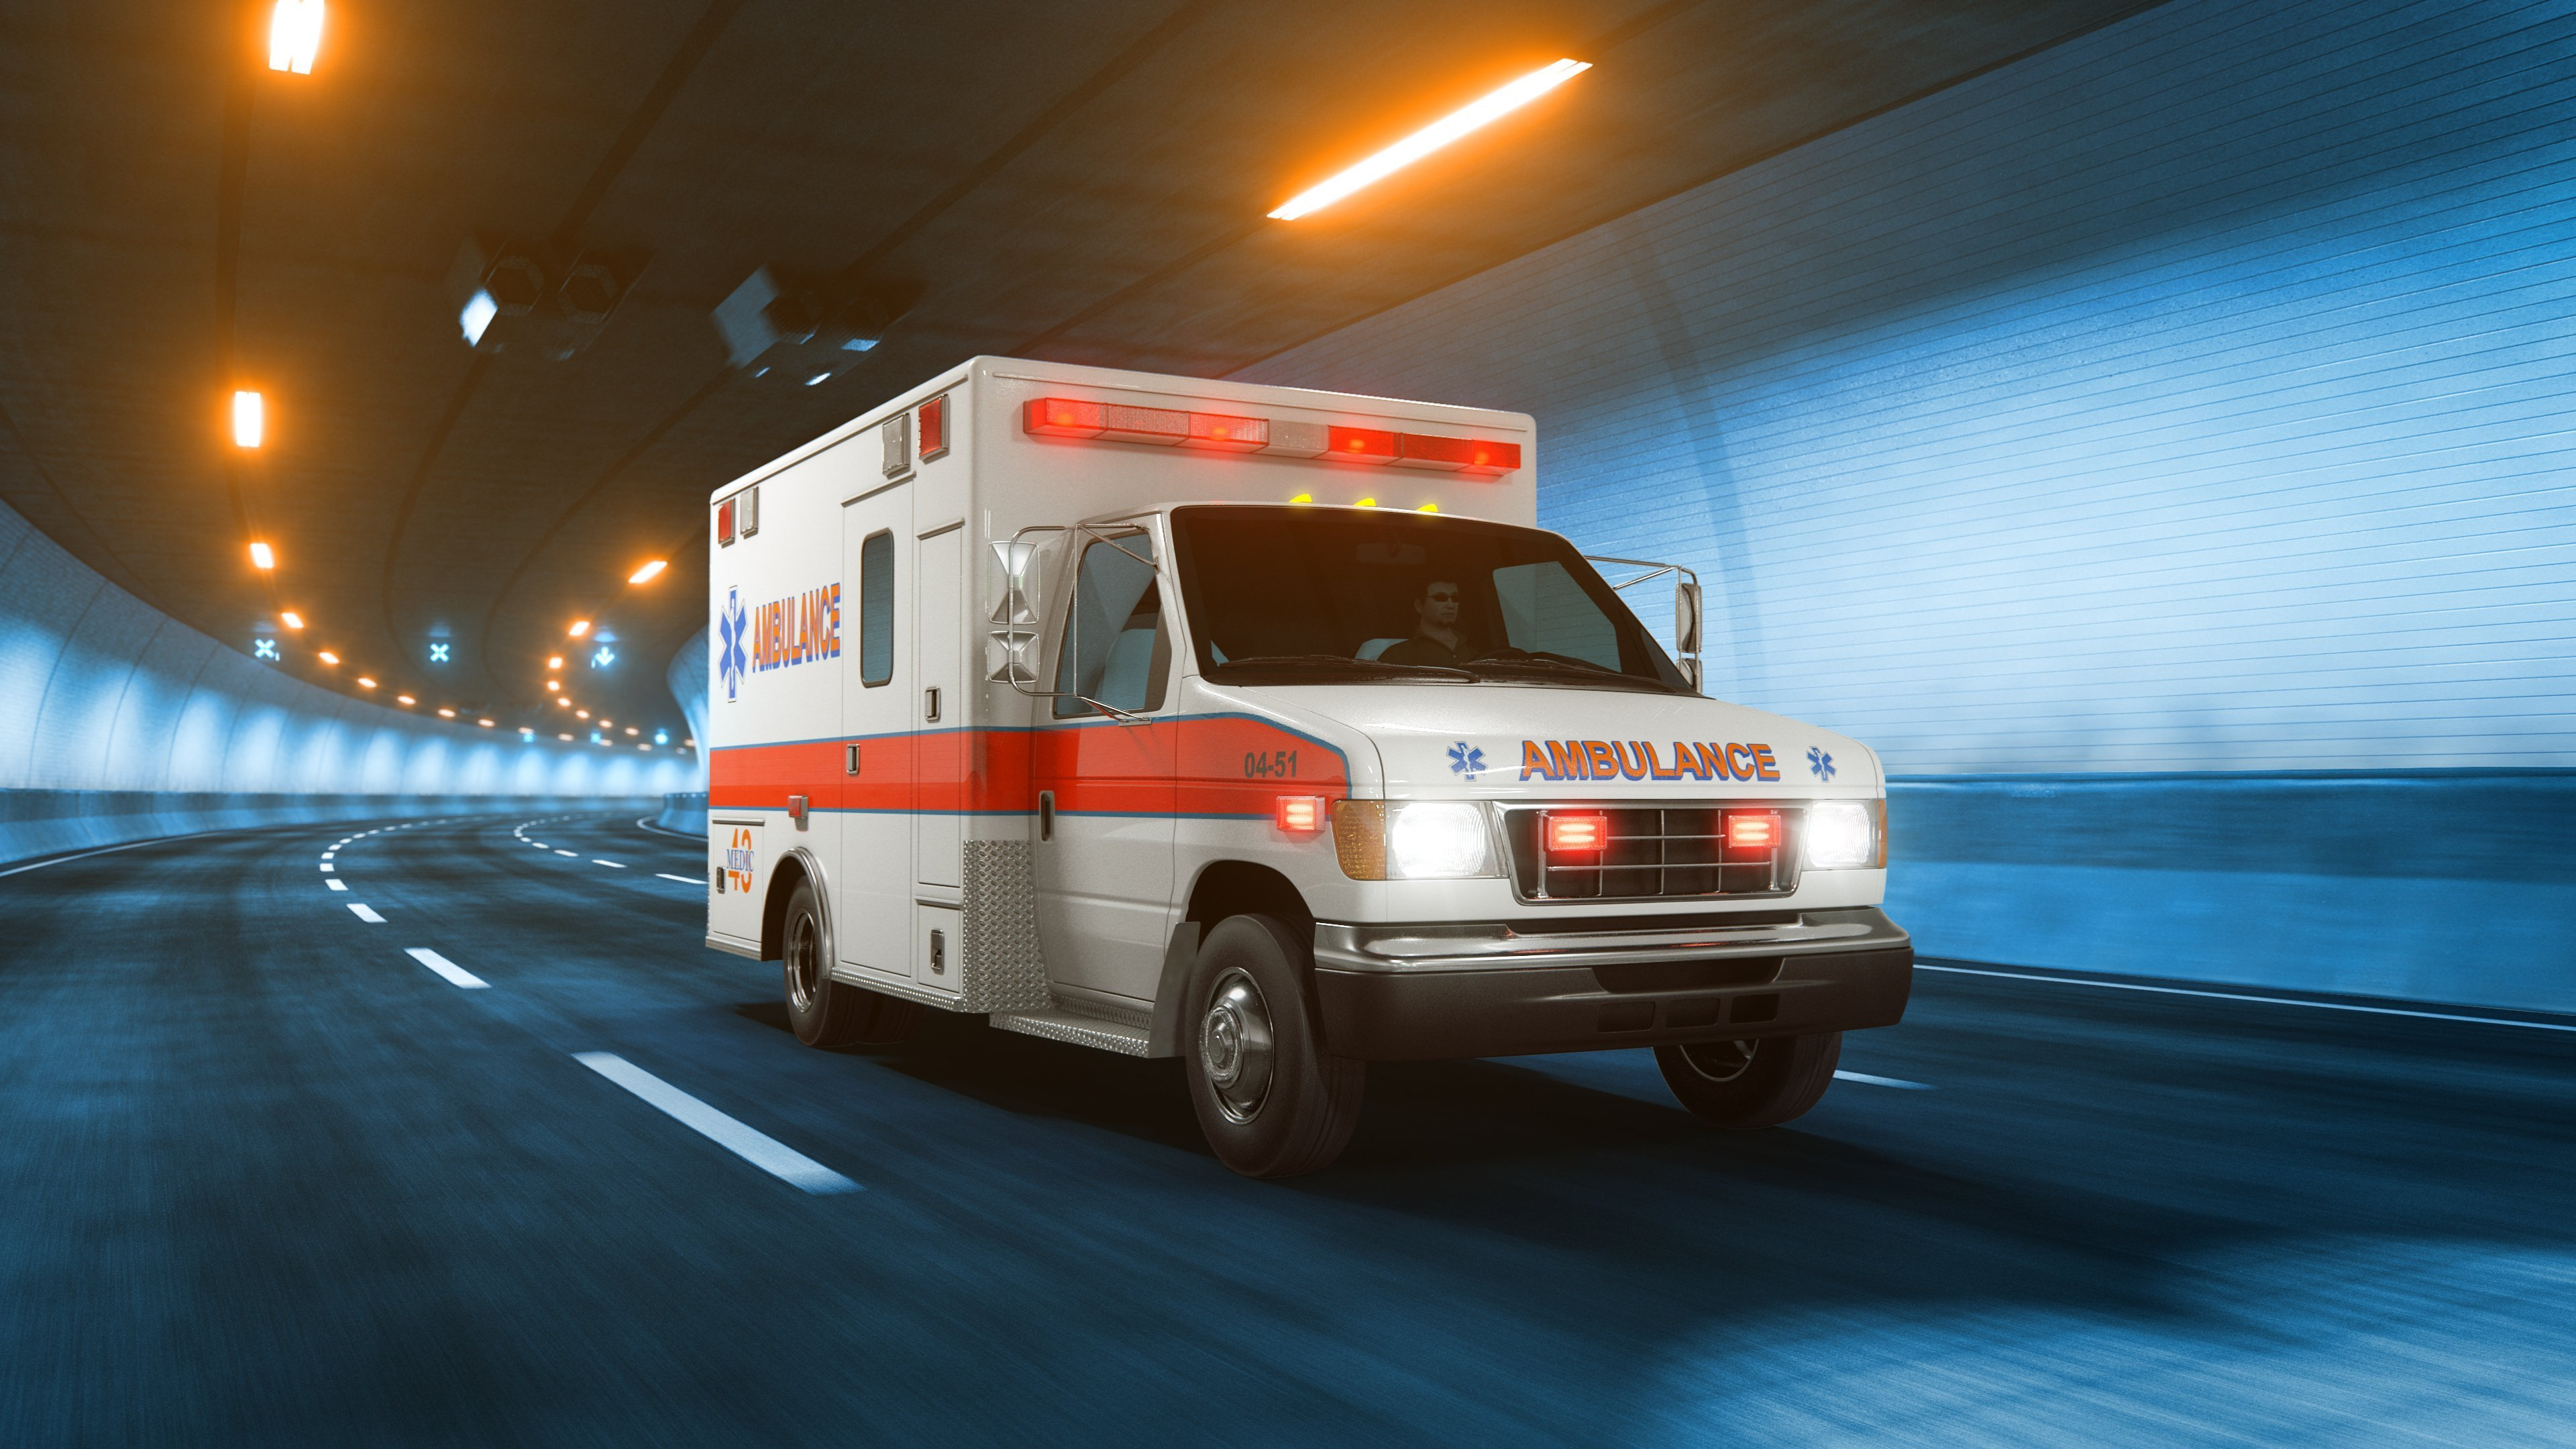 Ambulance car rides trough tunnel. Photo: Shutterstock